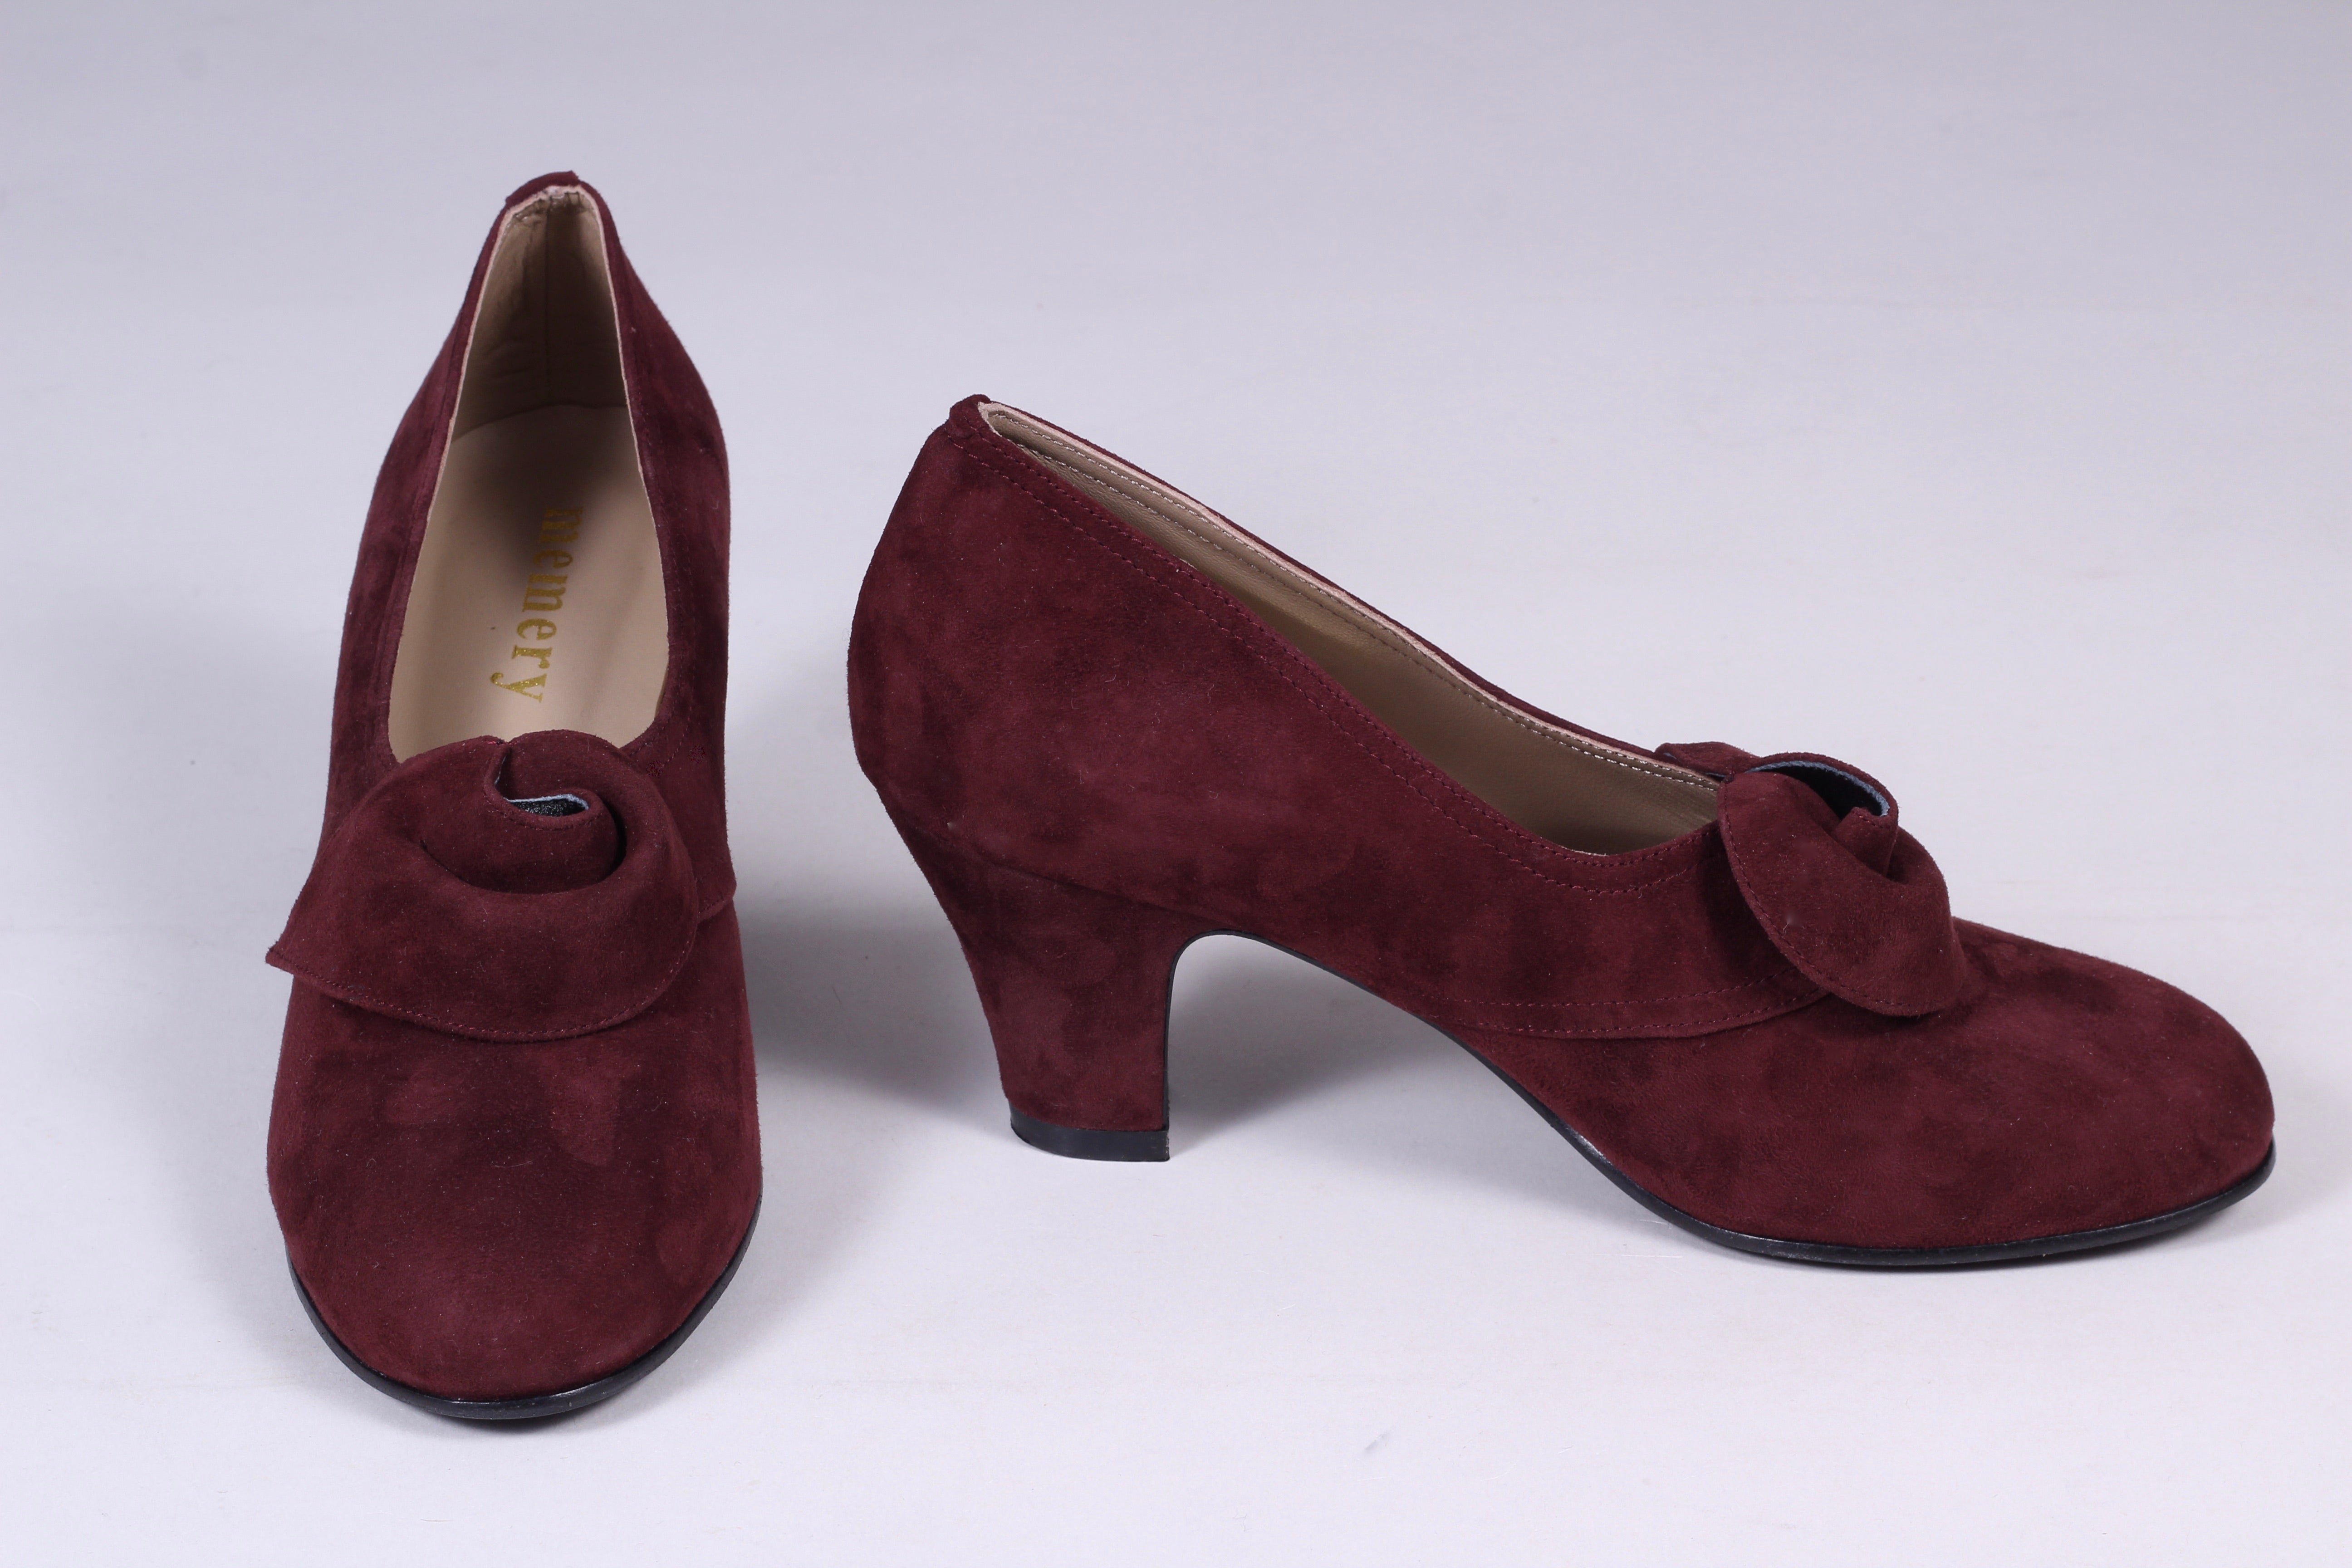 40's vintage style pumps in suede with rosette - Plum - Luise